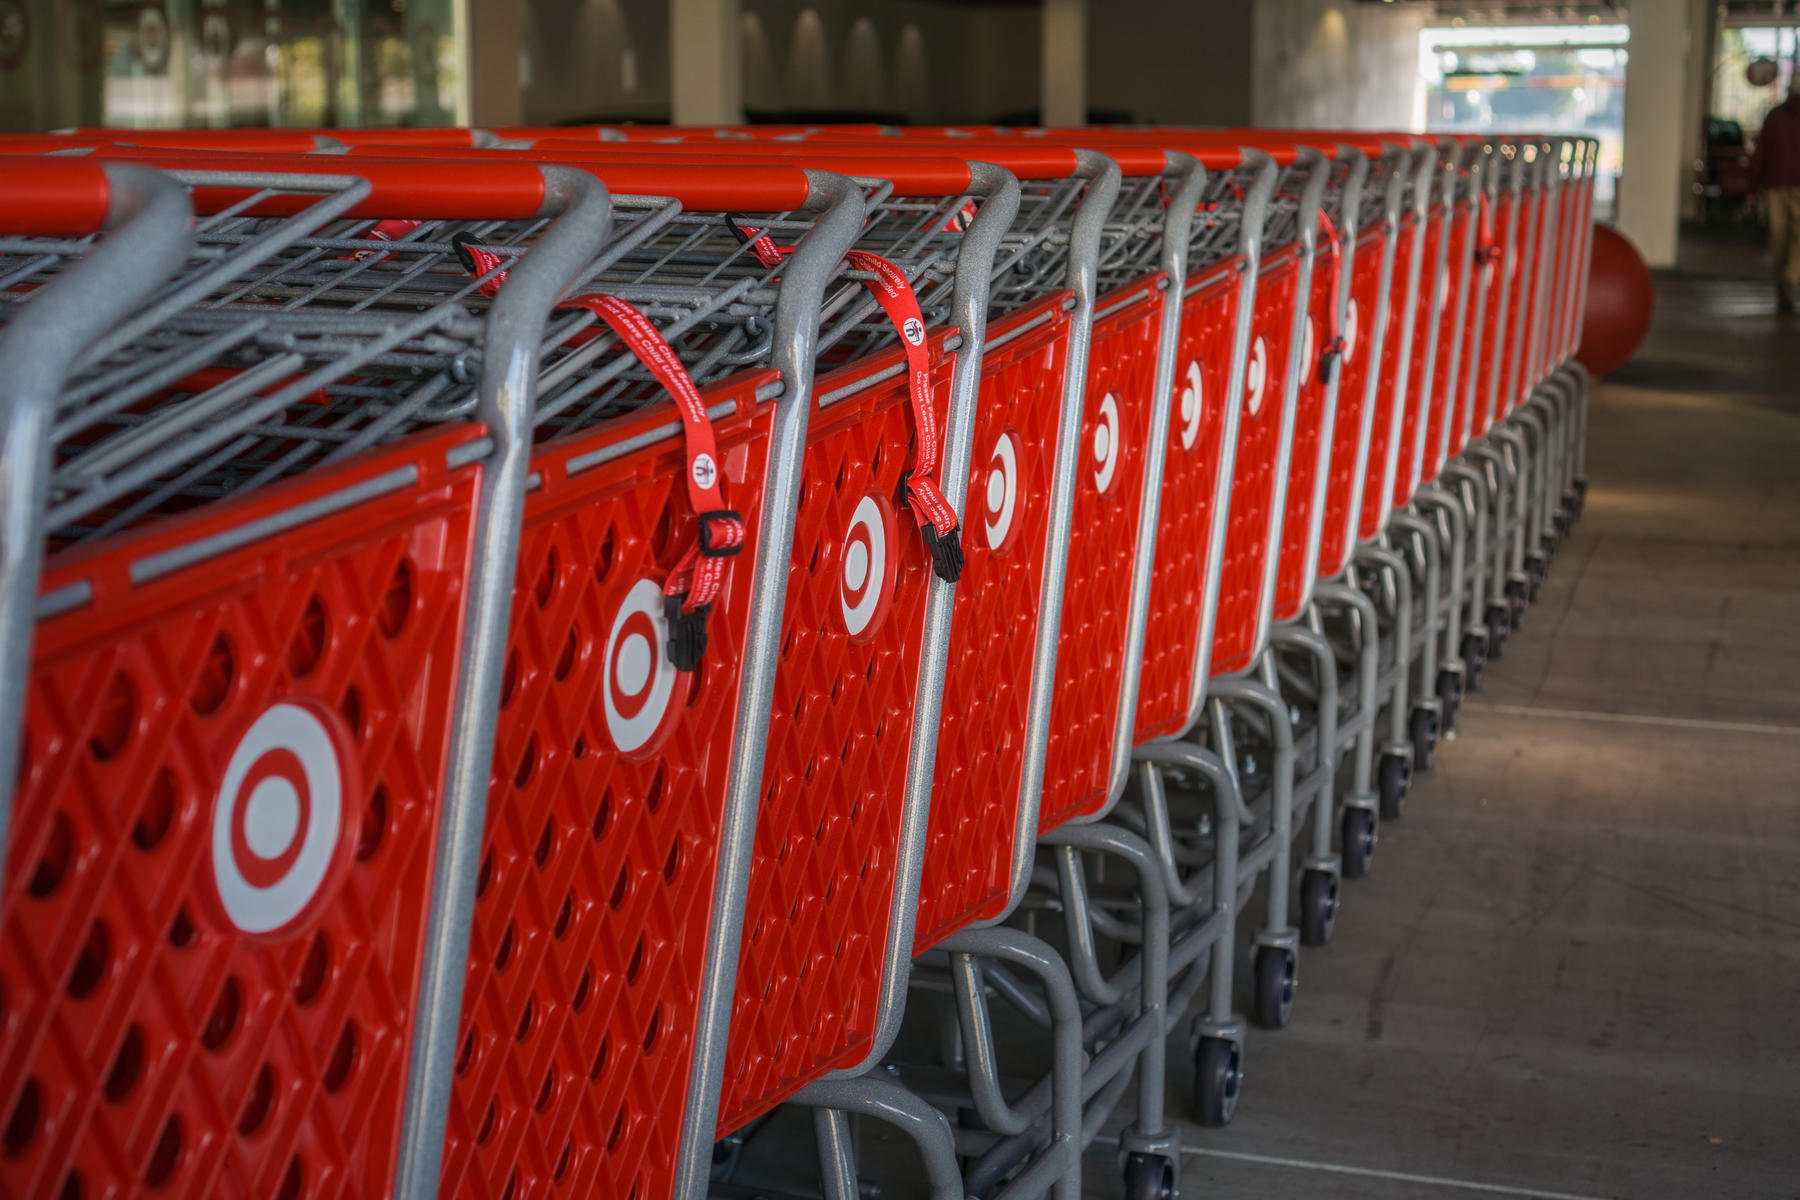 Target's Rewarding Parents with a $20 Gift Card for Every $100 Spent on Baby Gear